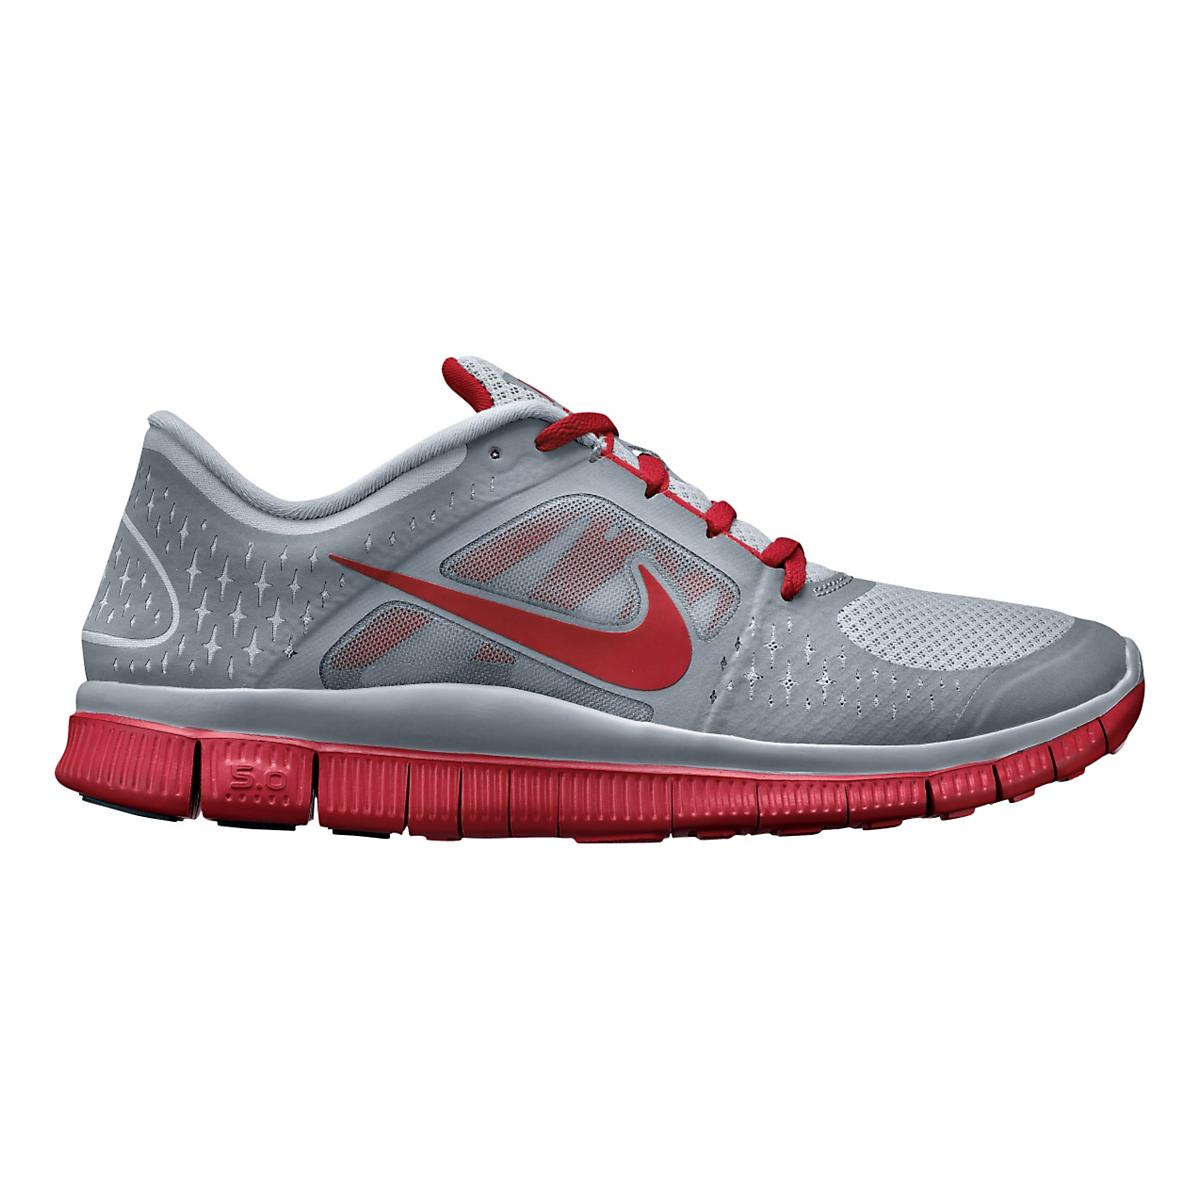 sports shoes 019a4 ce64d shop customize customize it with nikeid c452f 2e760  low price mens nike  free run 3 running shoe at road runner sports 5ac81 df082